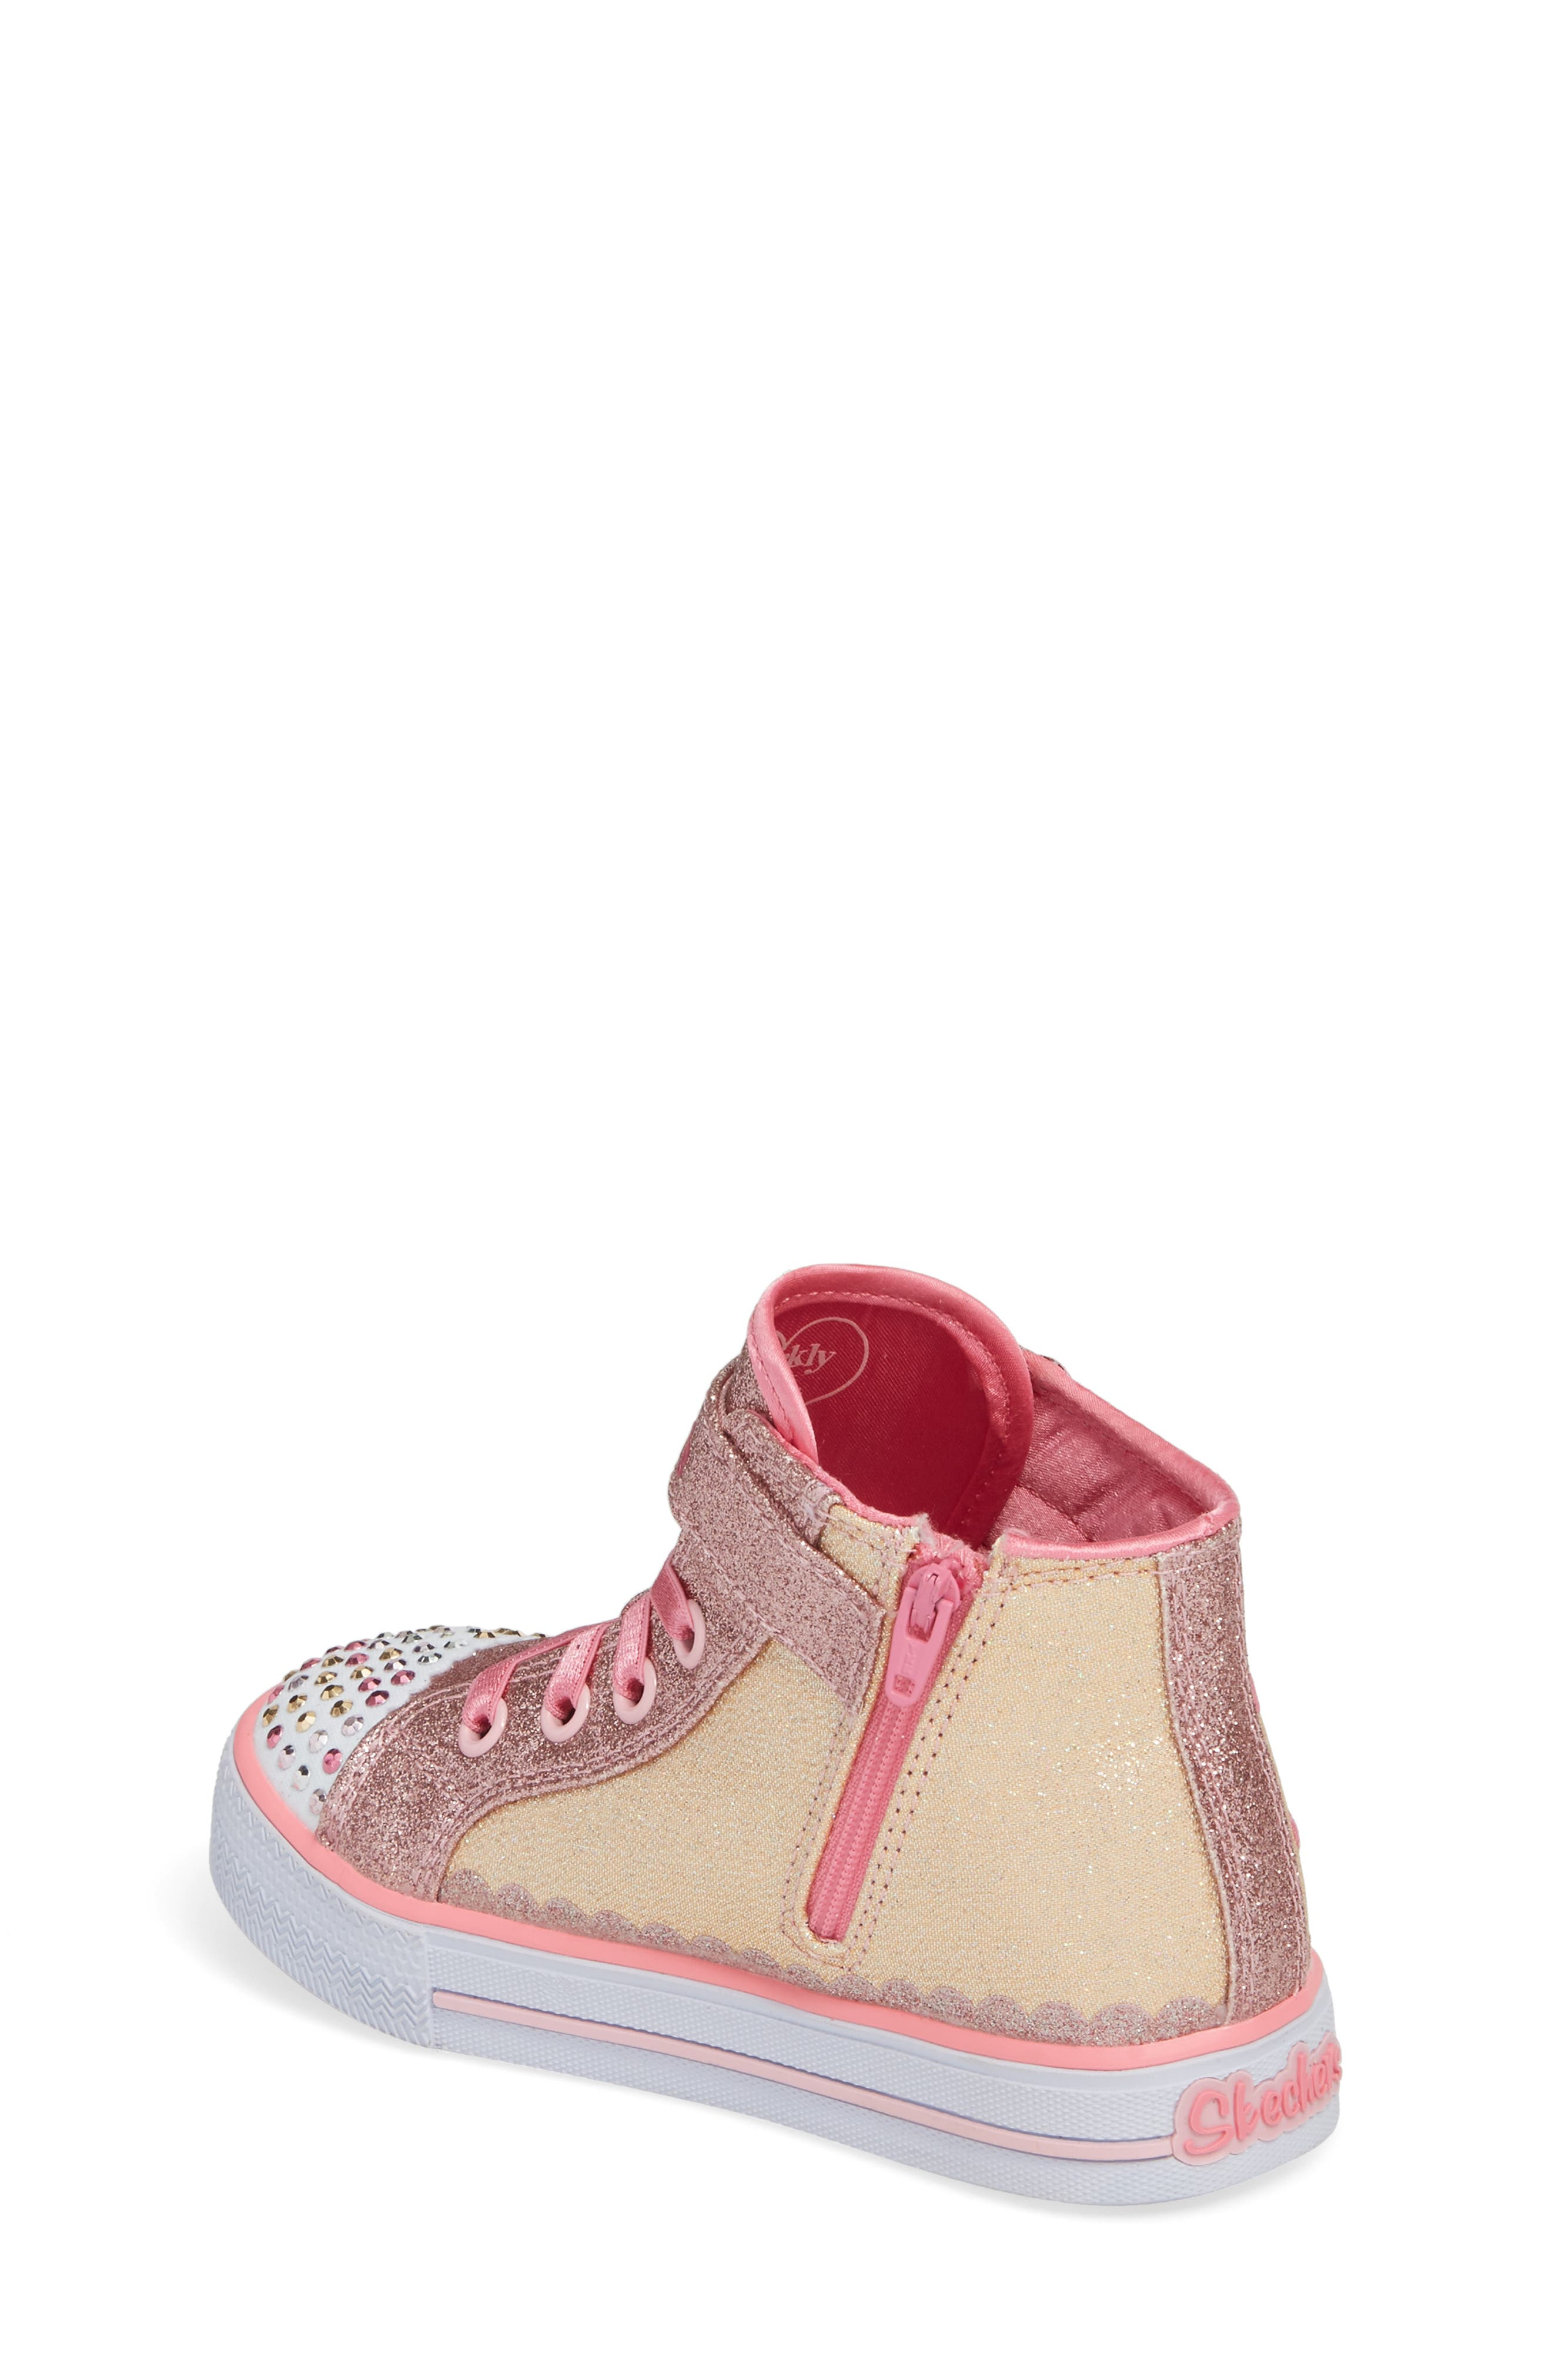 Twinkle Toes - Shuffles High Top Sneaker,                             Alternate thumbnail 2, color,                             Pink/ Hot Pink